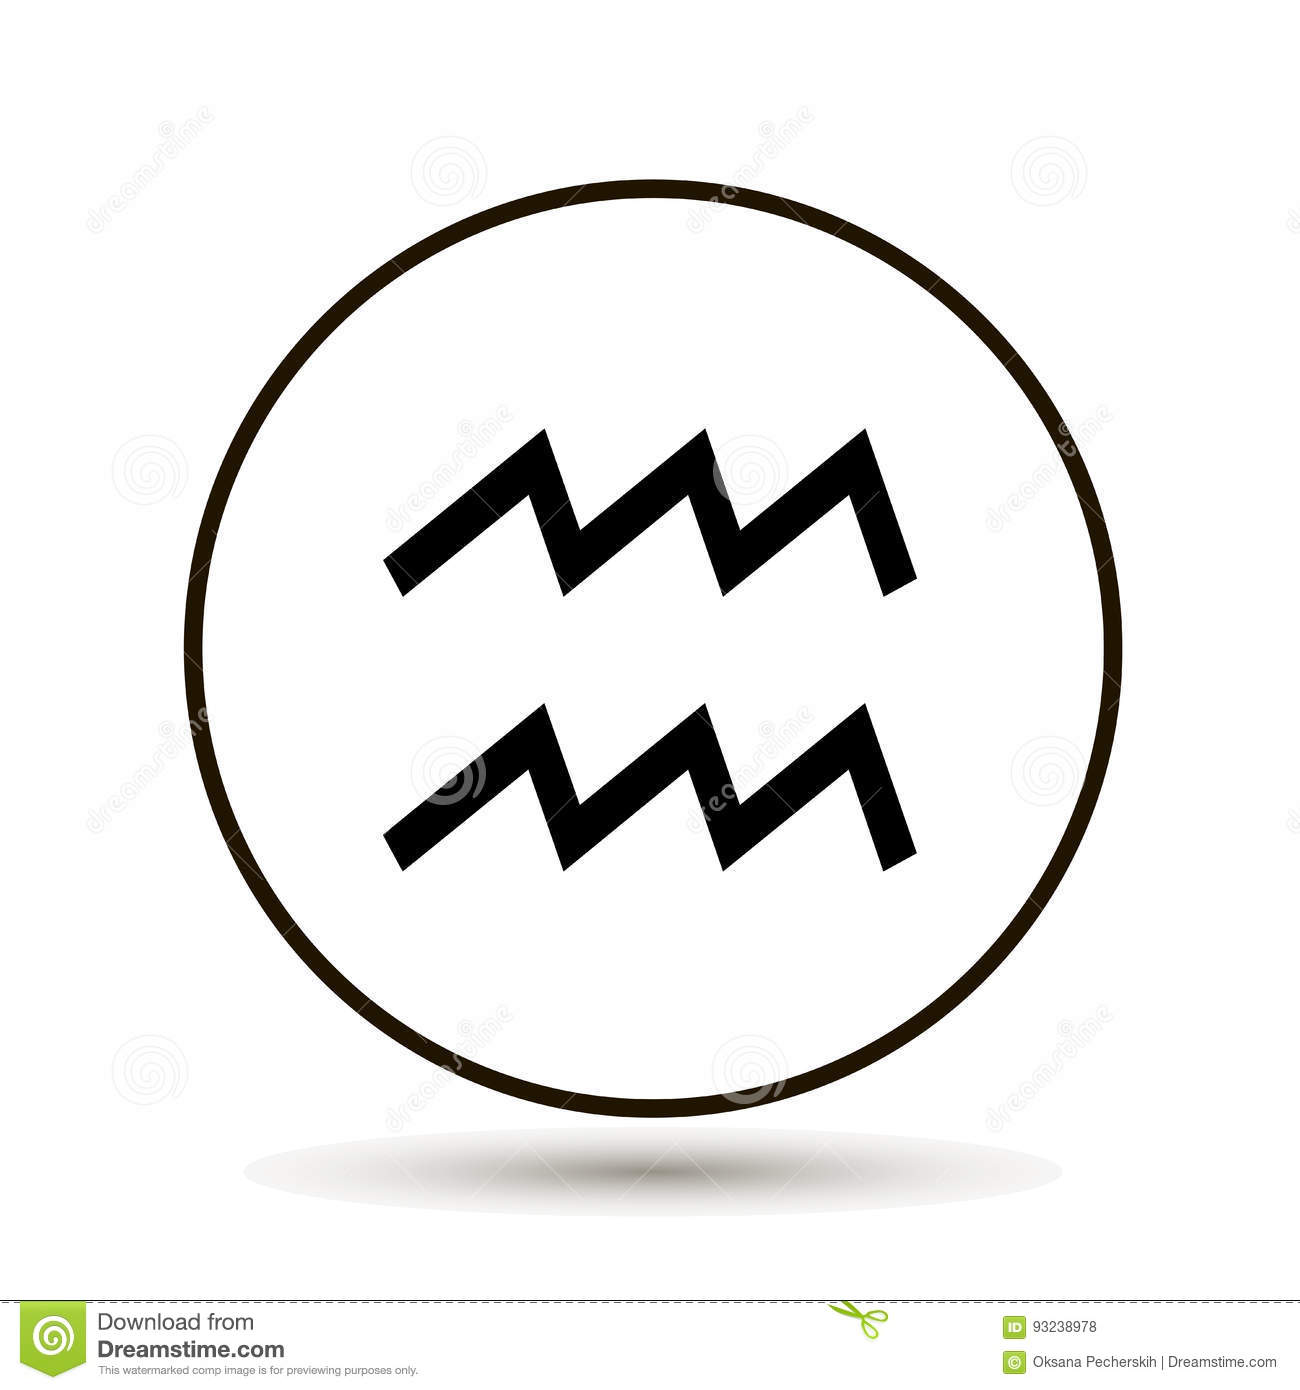 aquarius zodiac sign astrological symbol icon in circle on whi